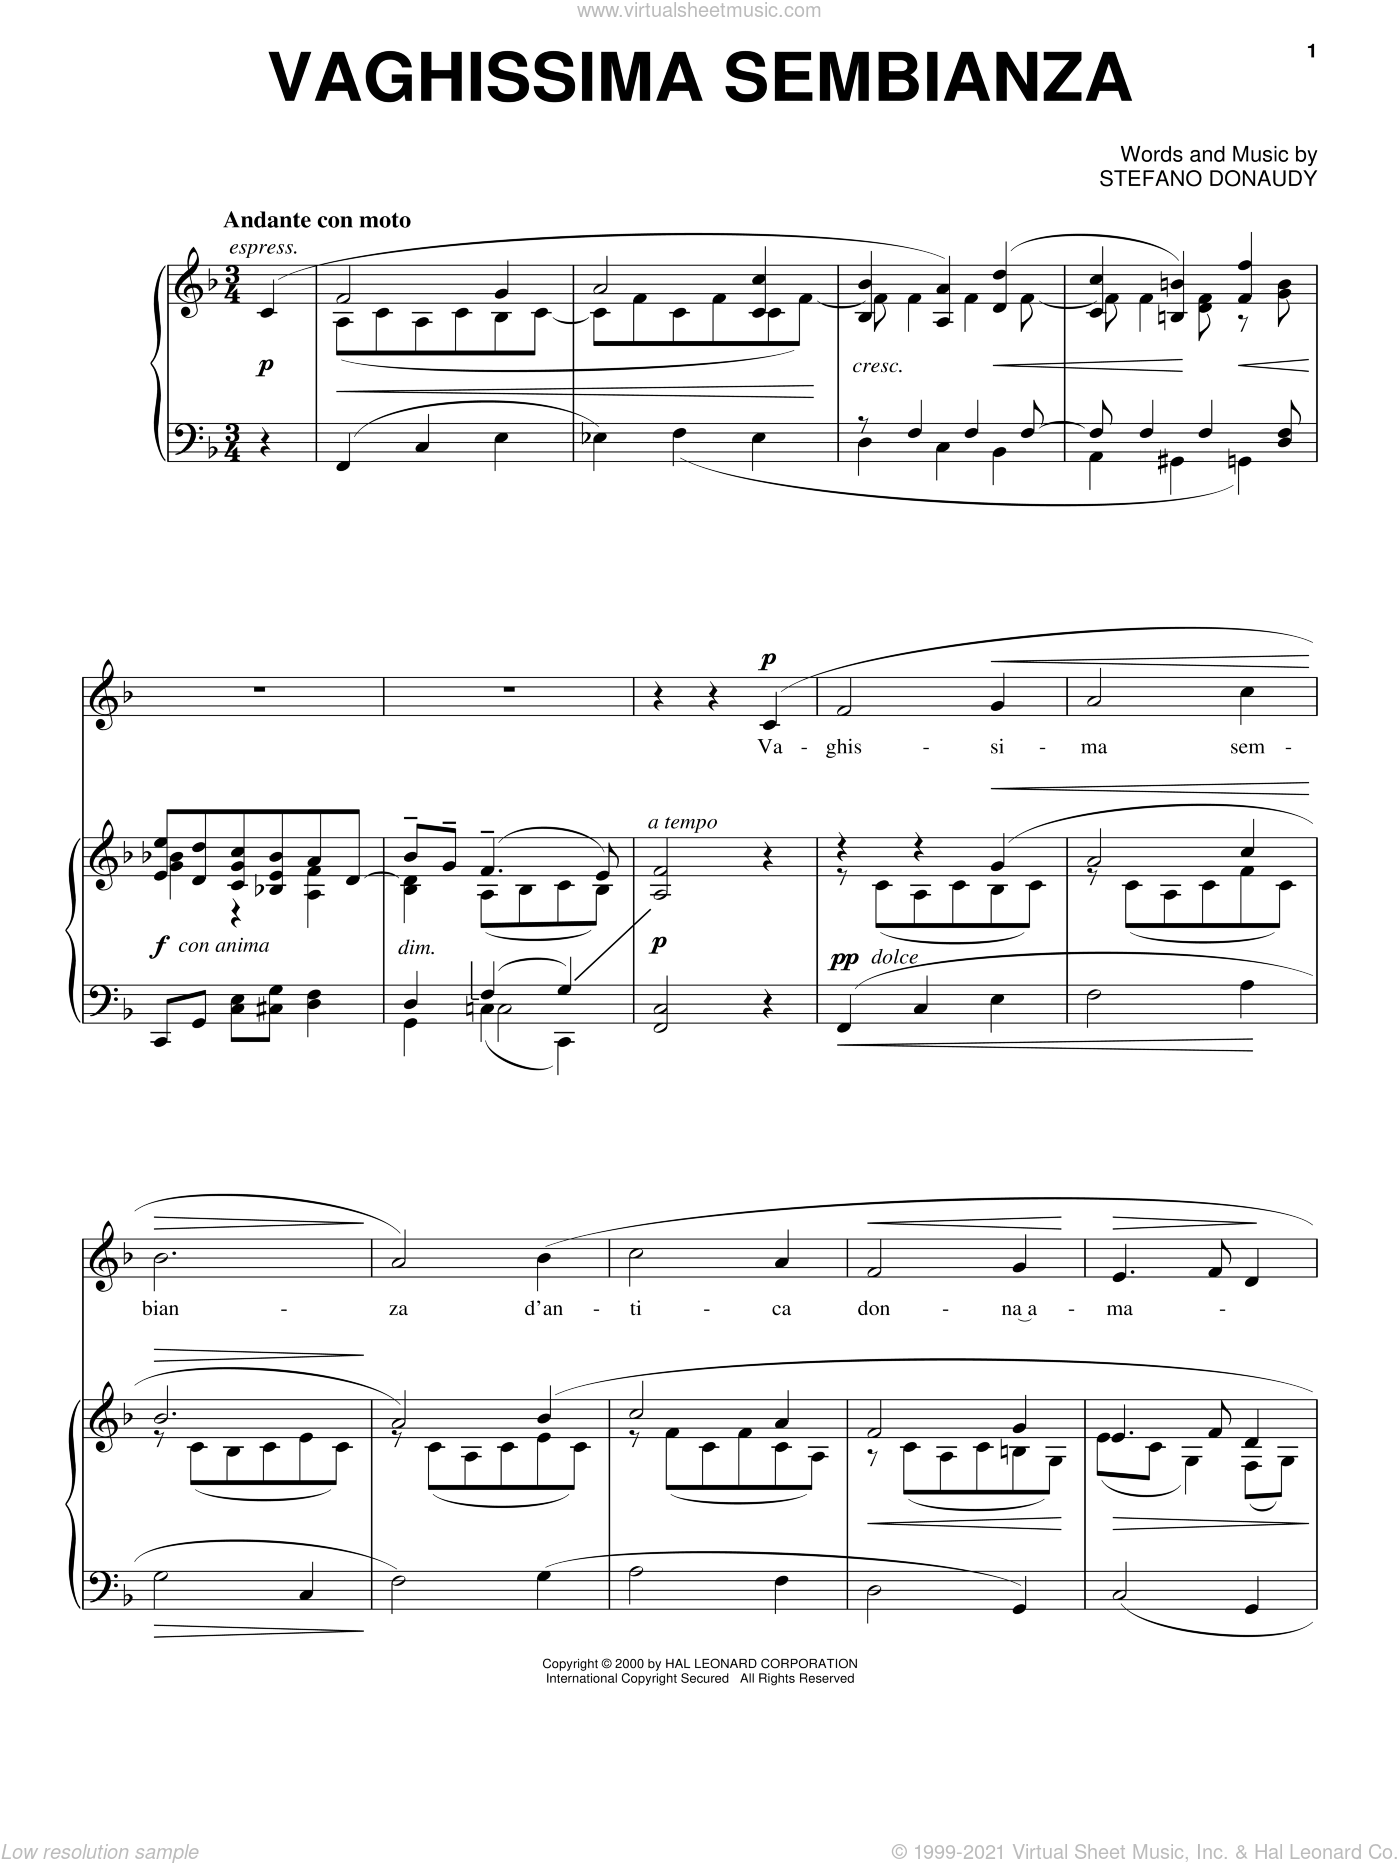 Vaghissima Sembianza sheet music for voice, piano or guitar by Stefano Donaudy, intermediate skill level